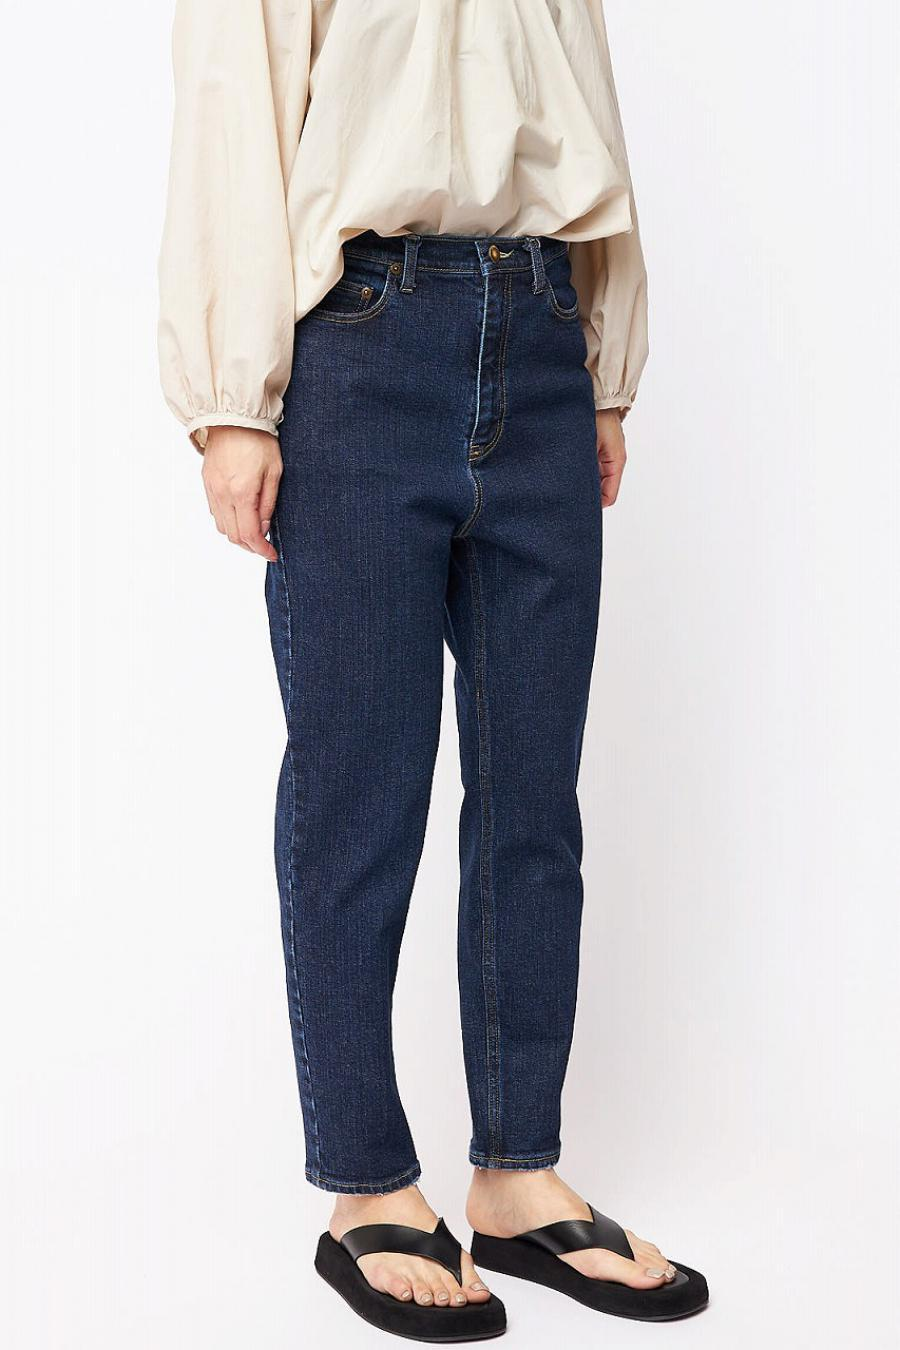 13oz Strech Denim Pants